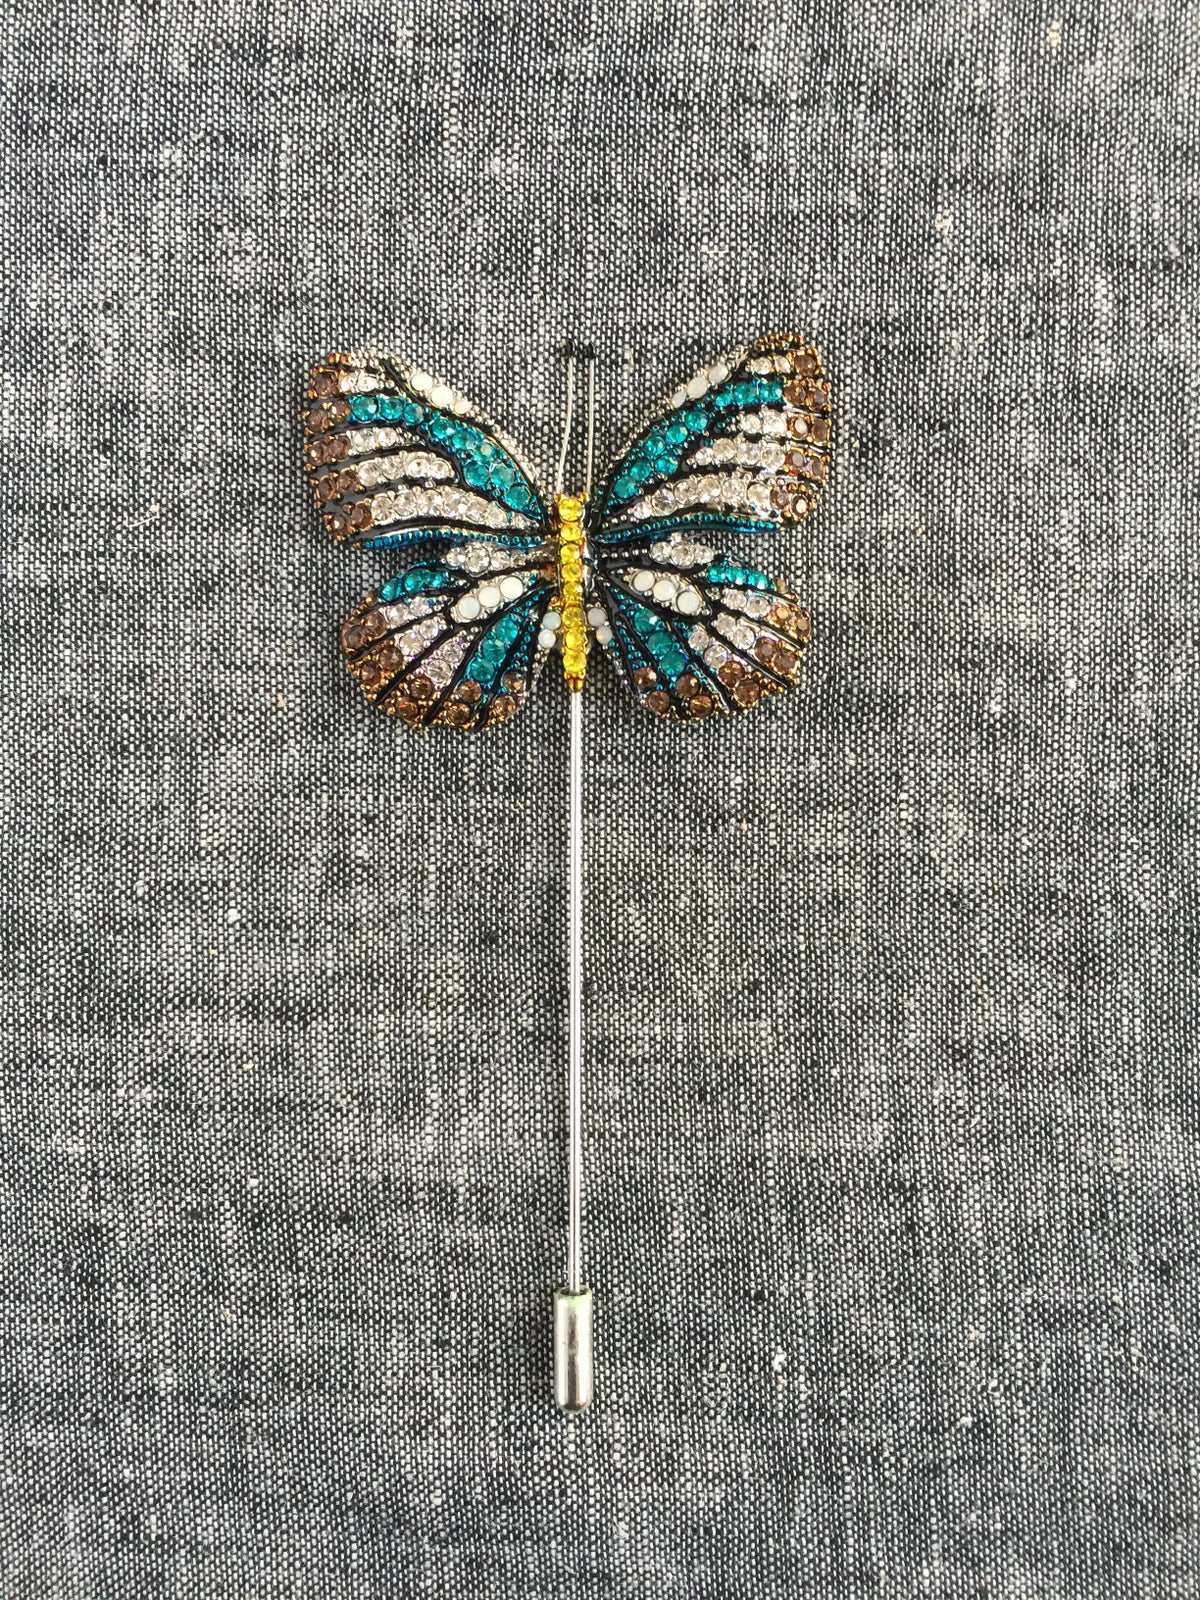 Image of Butterfly Lapel Pin (Brown, White, Teal)